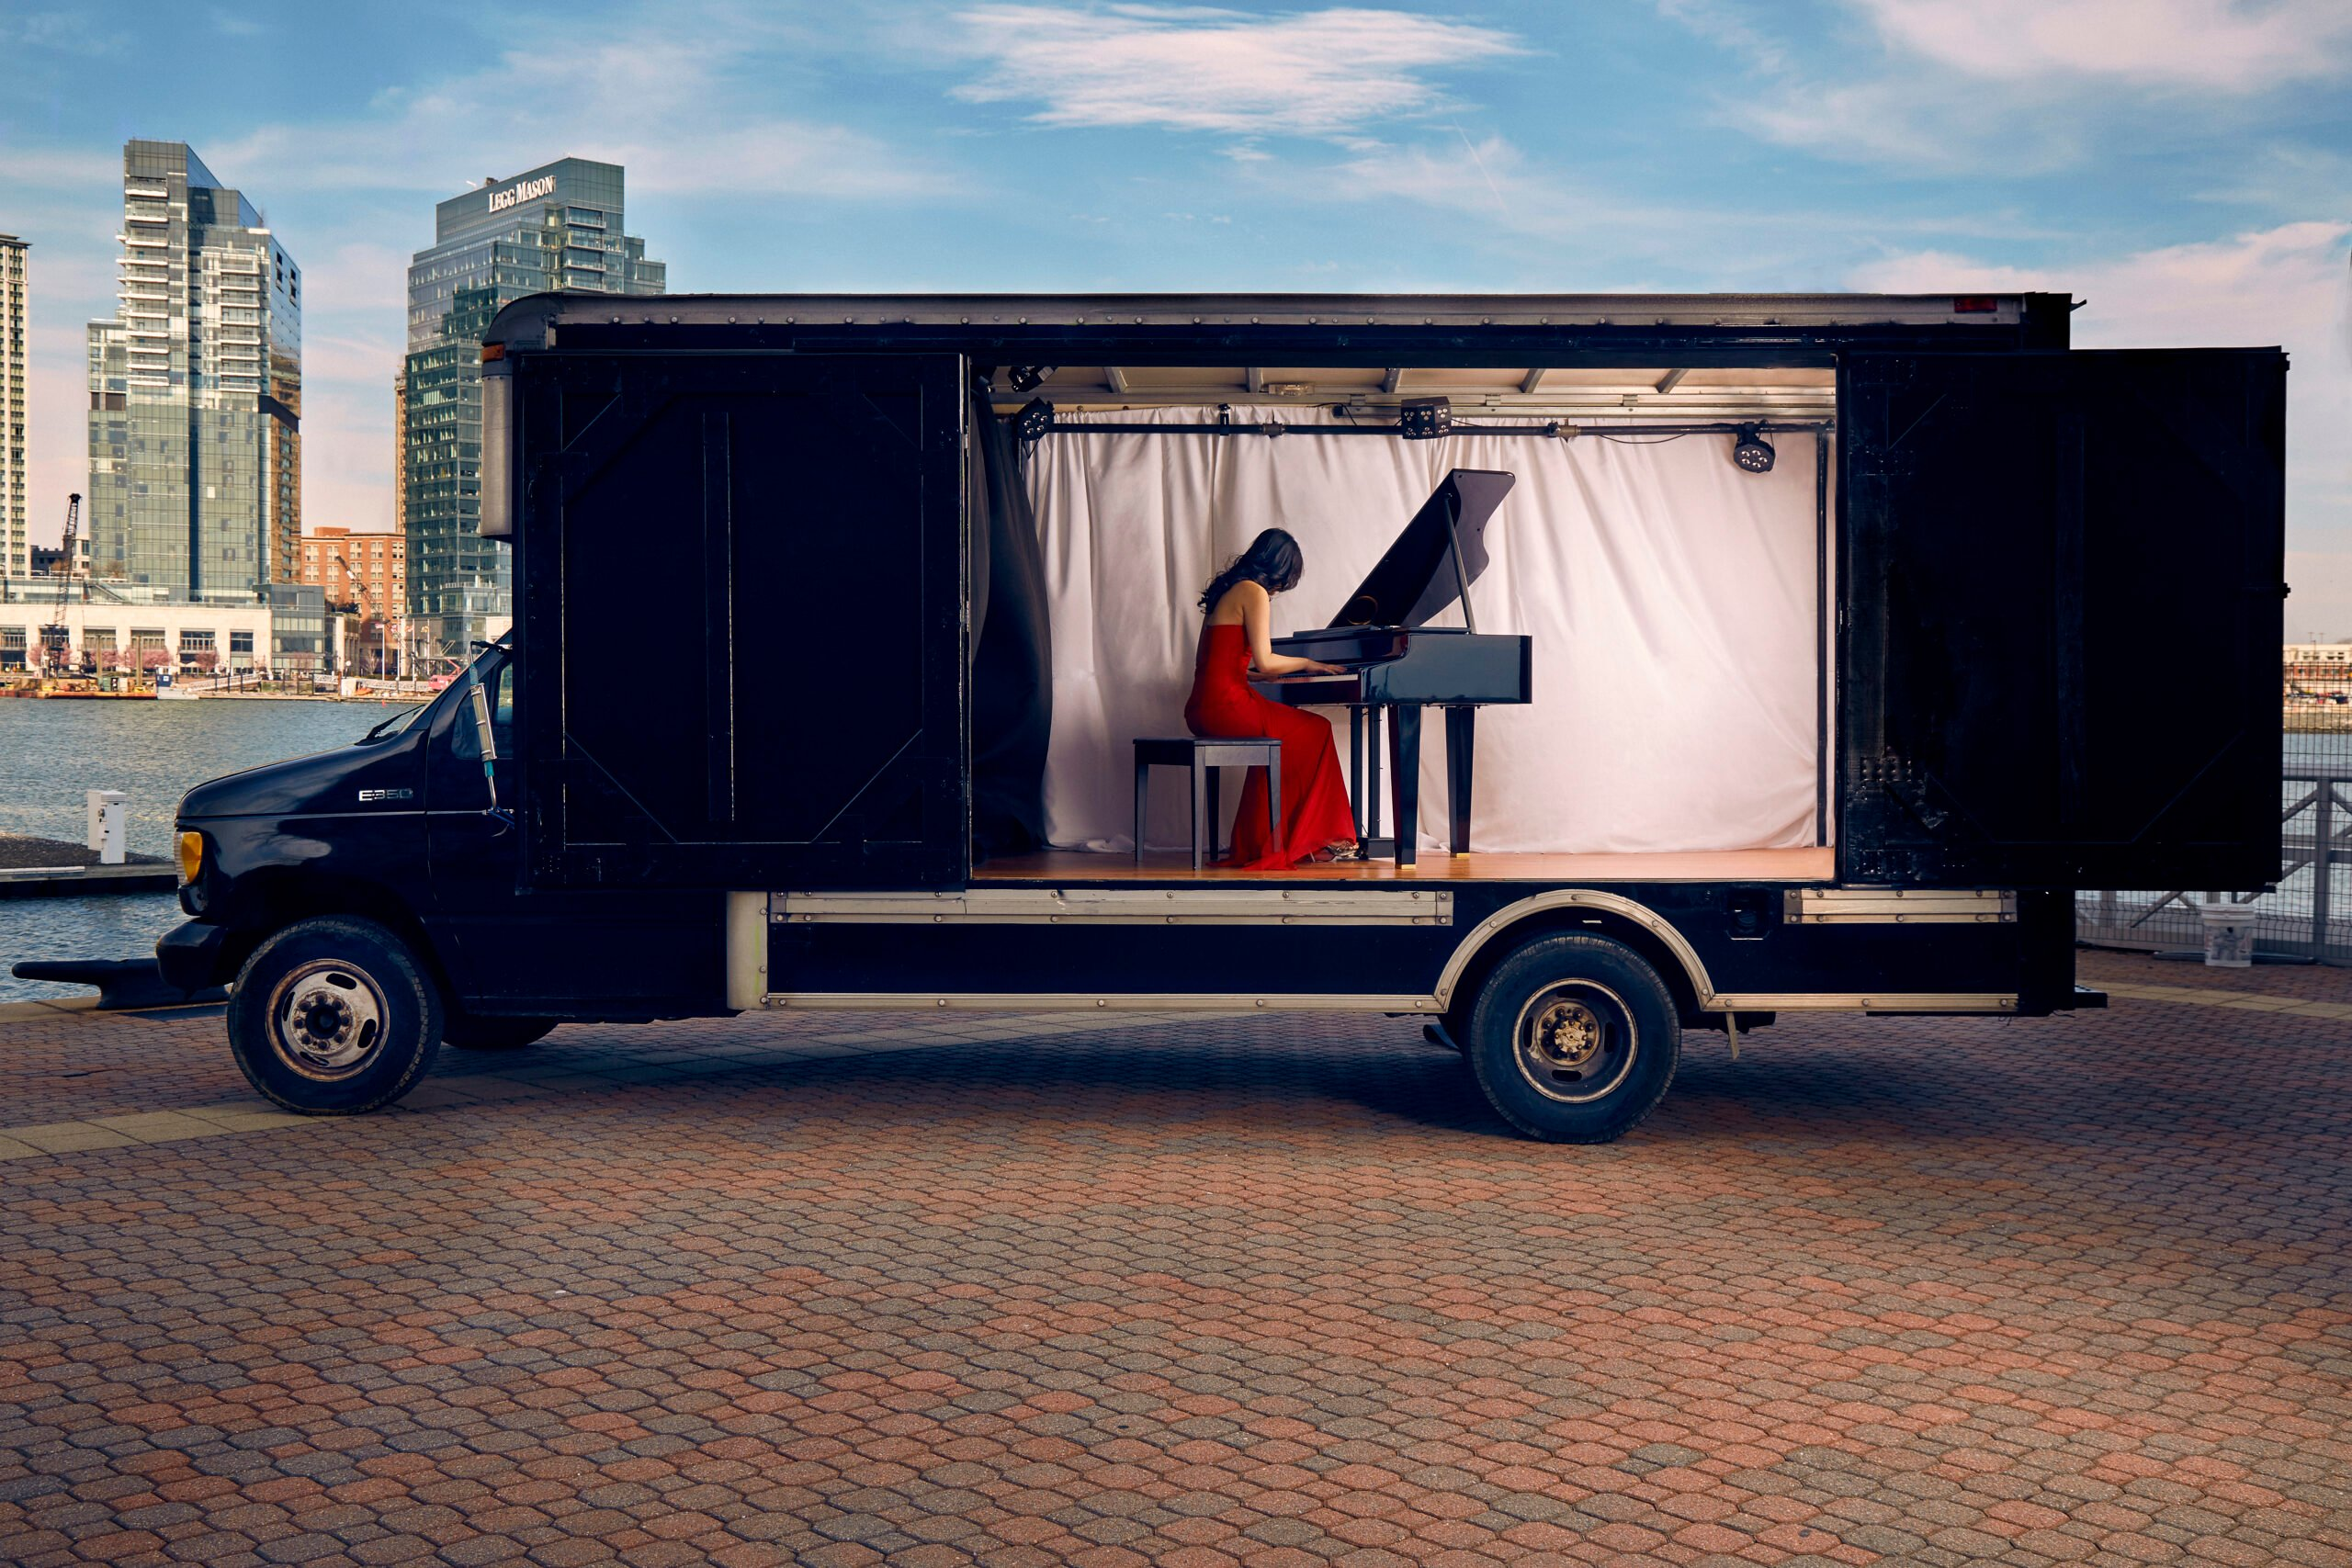 Concert Truck brings the music to us